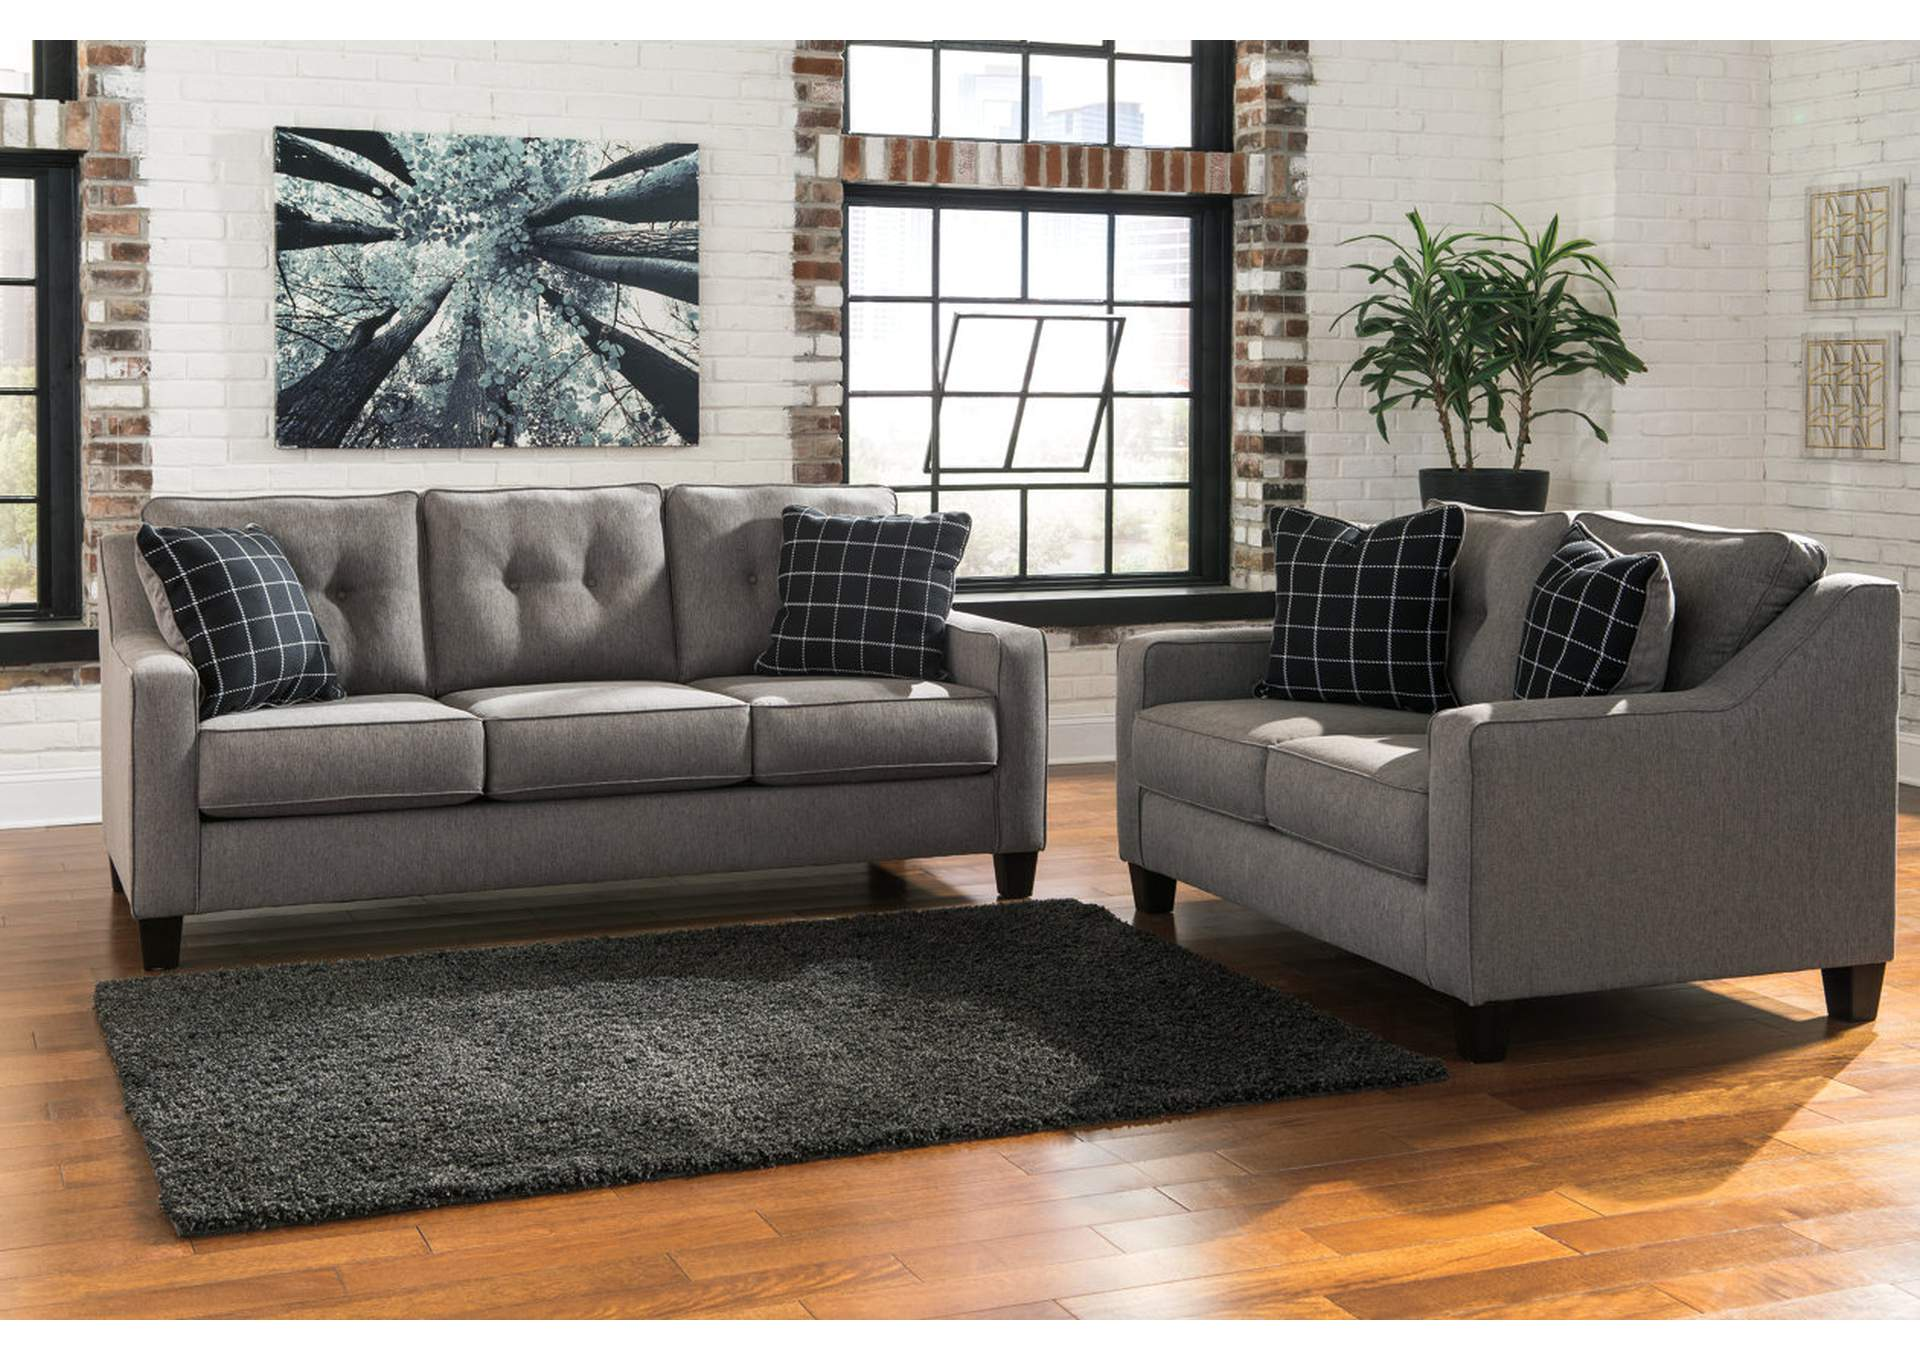 Brindon Charcoal Sofa and Loveseat,Benchcraft